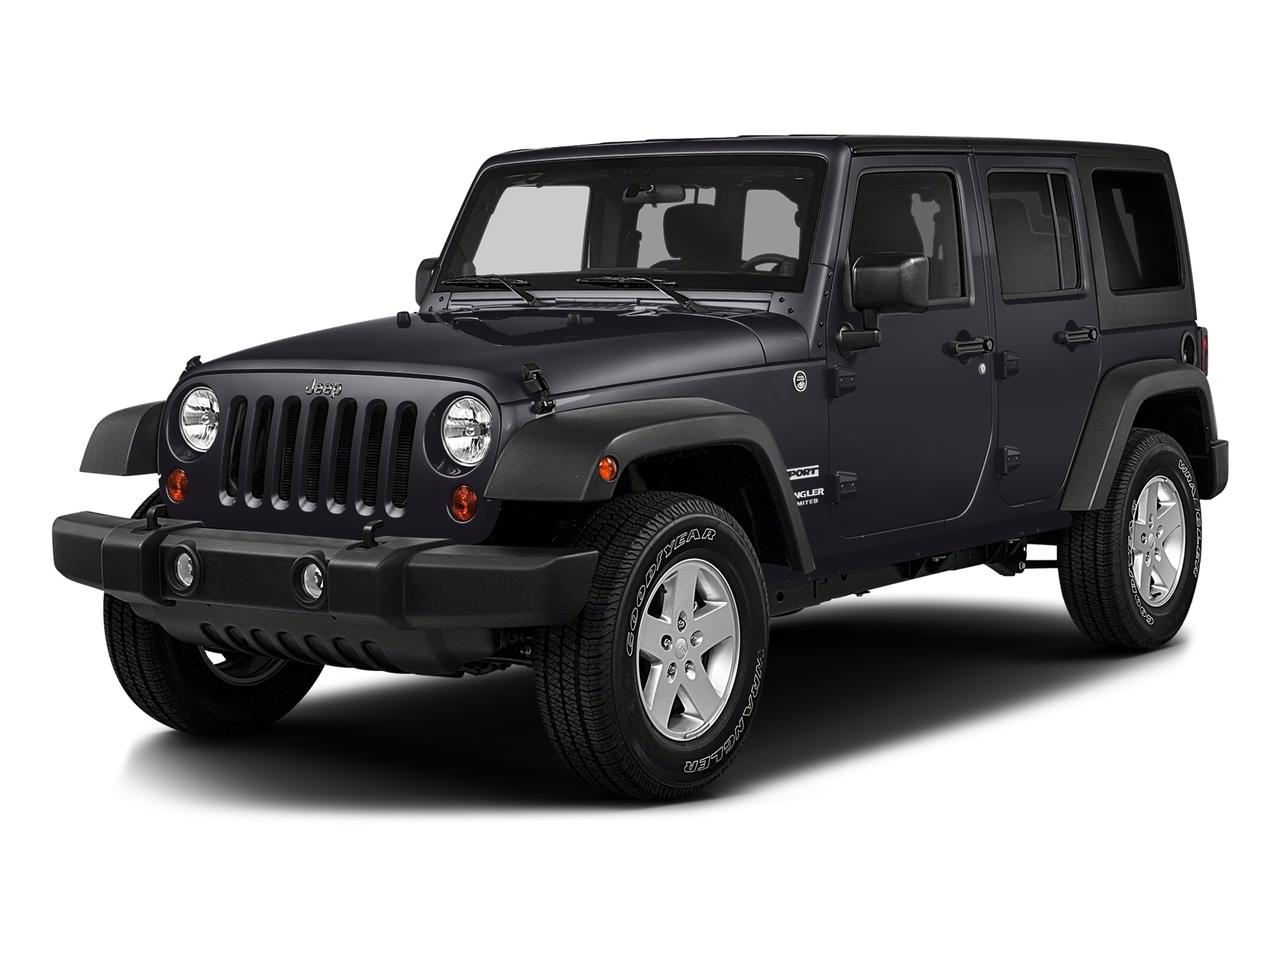 2016 Jeep Wrangler Unlimited Vehicle Photo in TALLAHASSEE, FL 32304